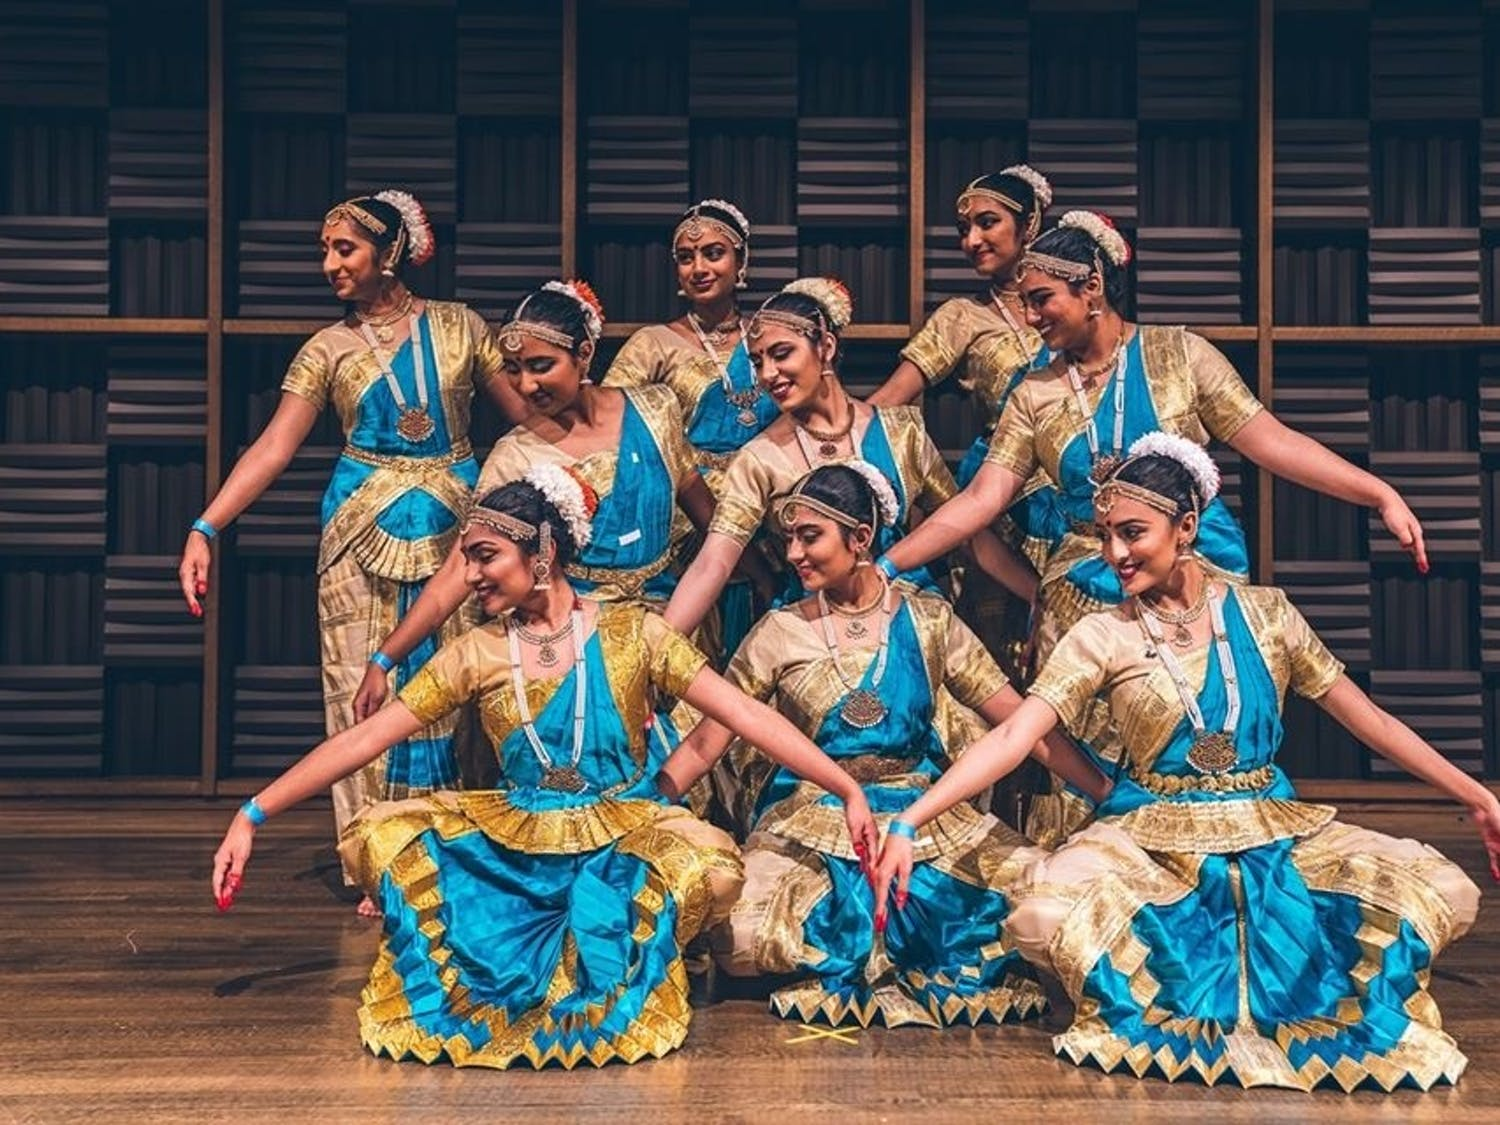 Ek Taal is a competitive Indian classical dance team at UNC. Photo courtesy of Sai Conjeevaram.